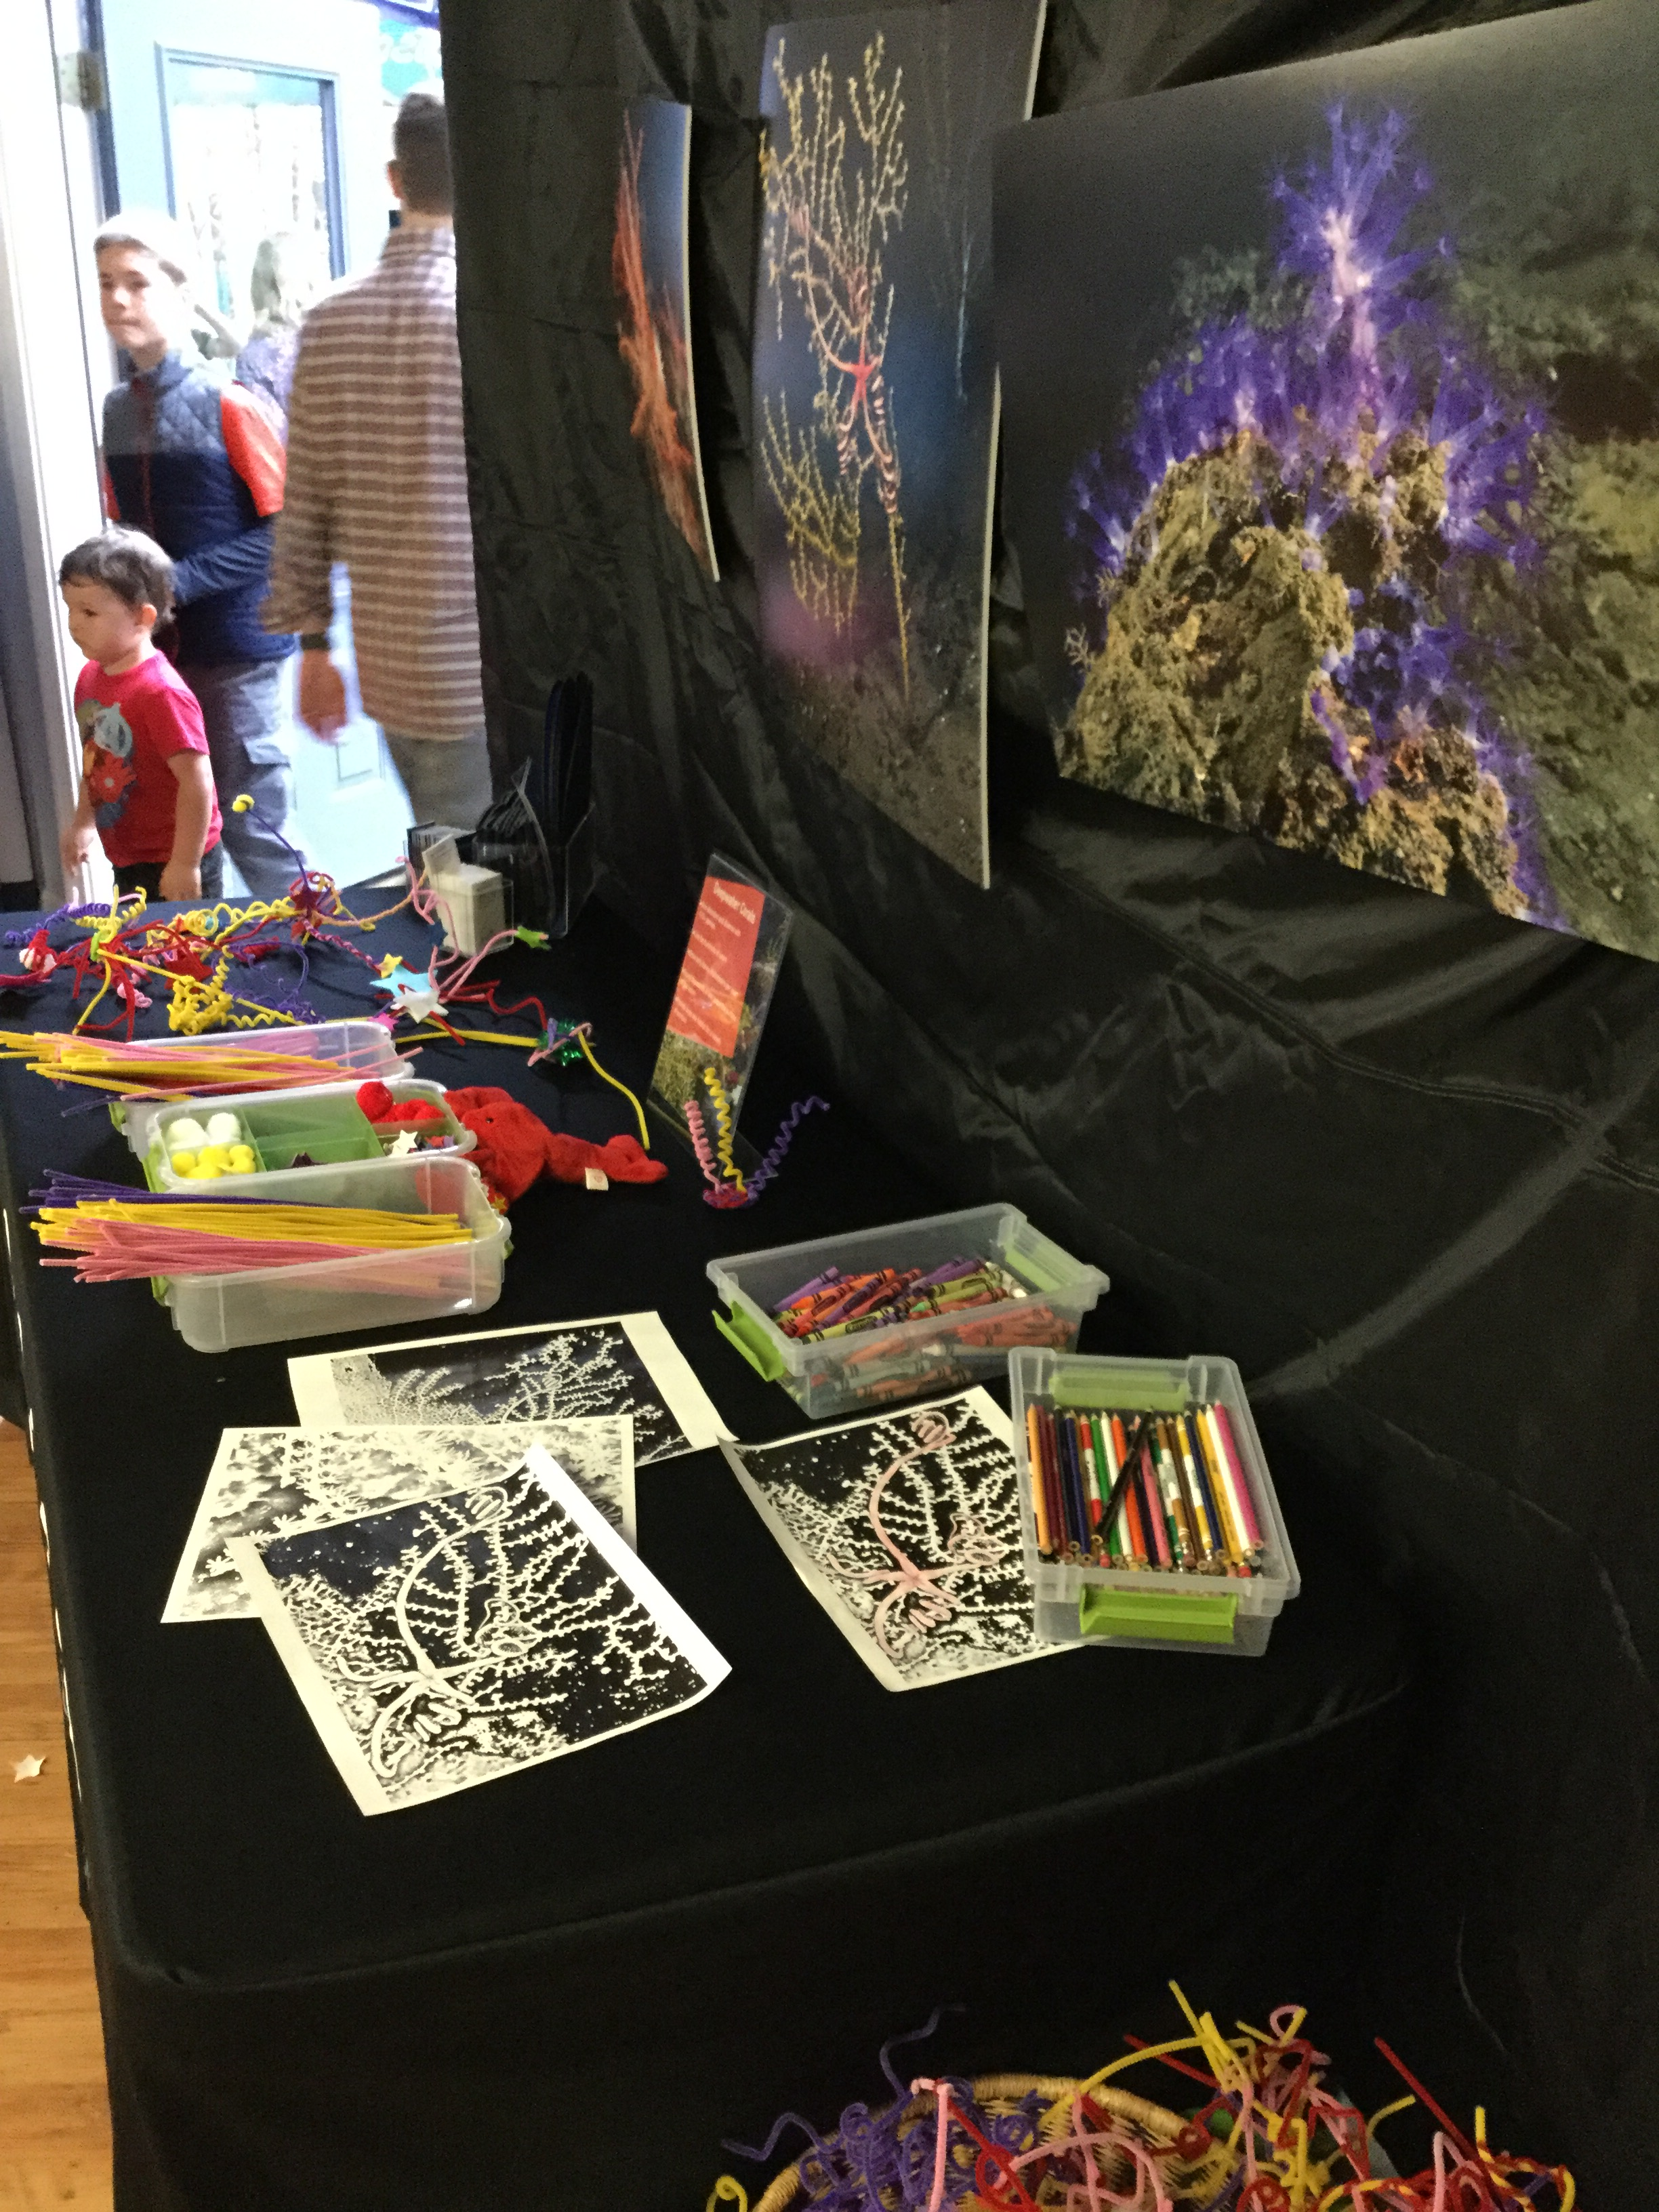 <div style='color:#000000;'><br /><br /><h2>Athens Montessori Fall Festival 2015. Build, draw, learn about deep sea coral station</h2>(C)&nbsp;ECOGIG</div>